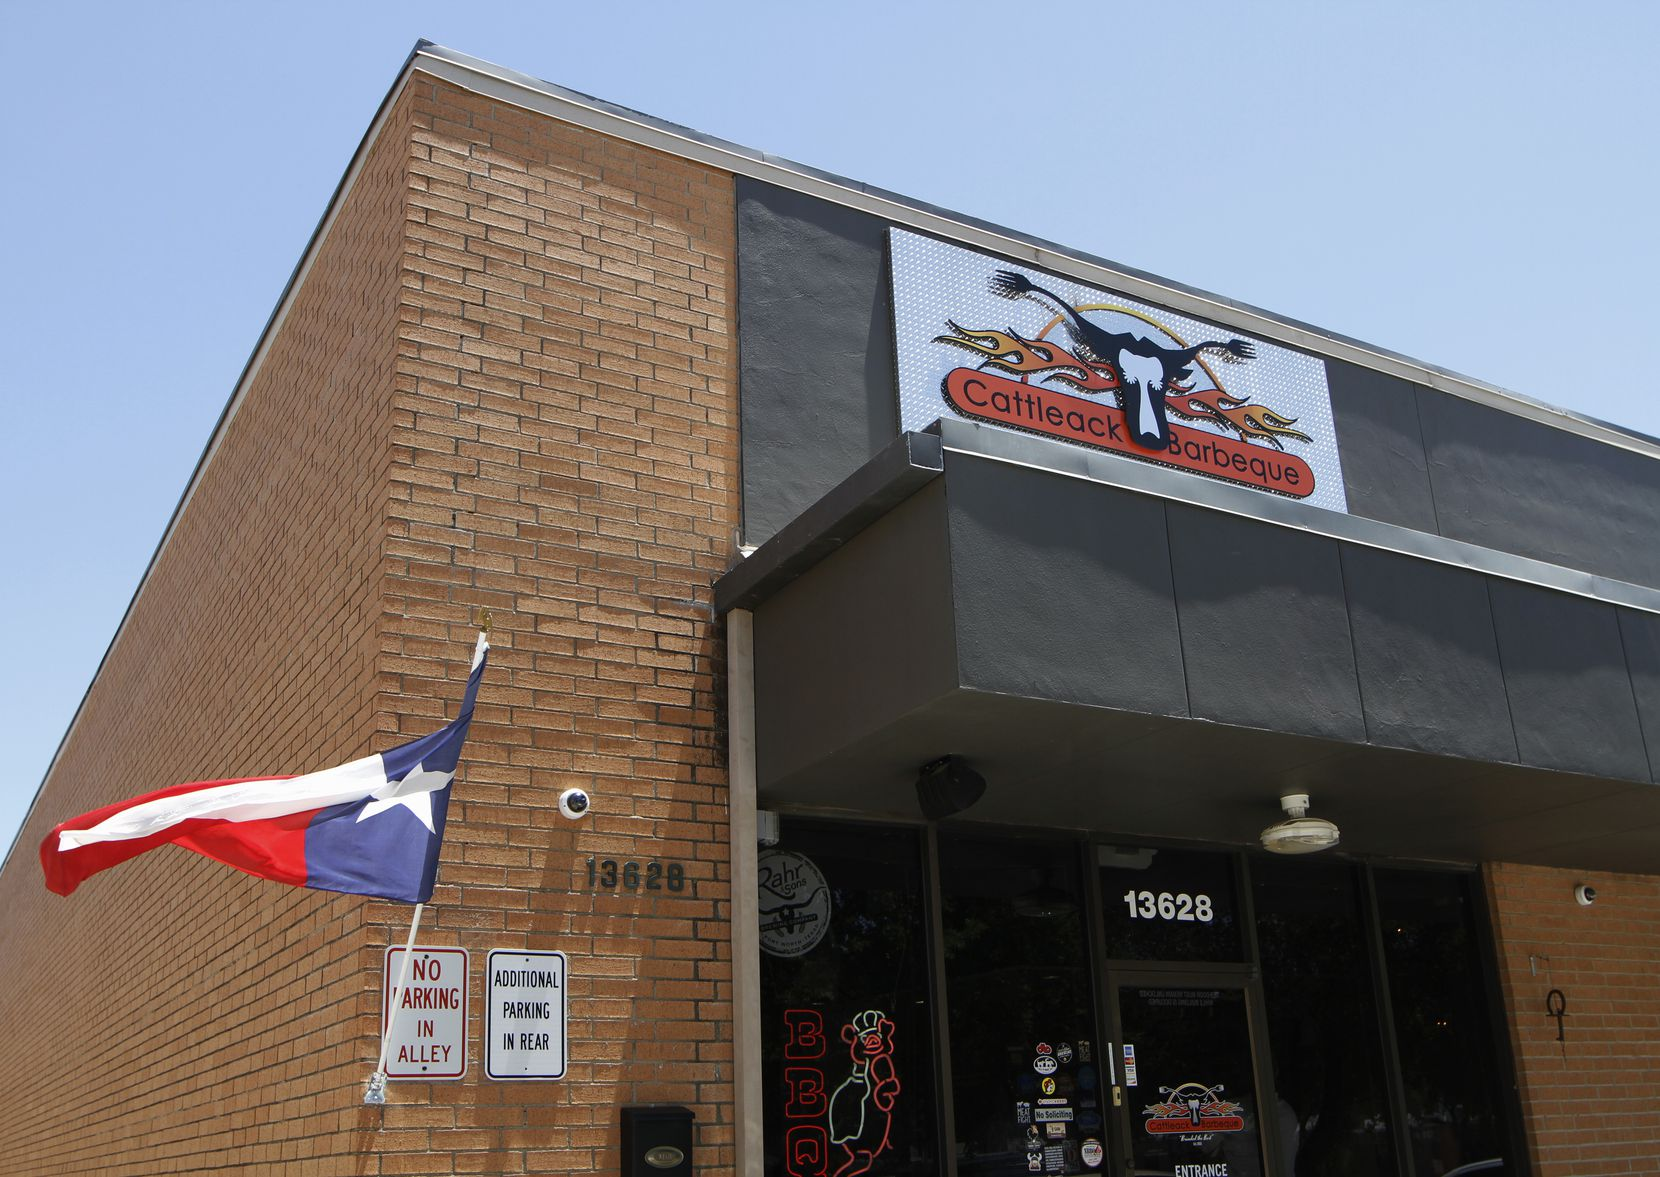 The Texas flag displayed at Cattleack Barbeque restaurant